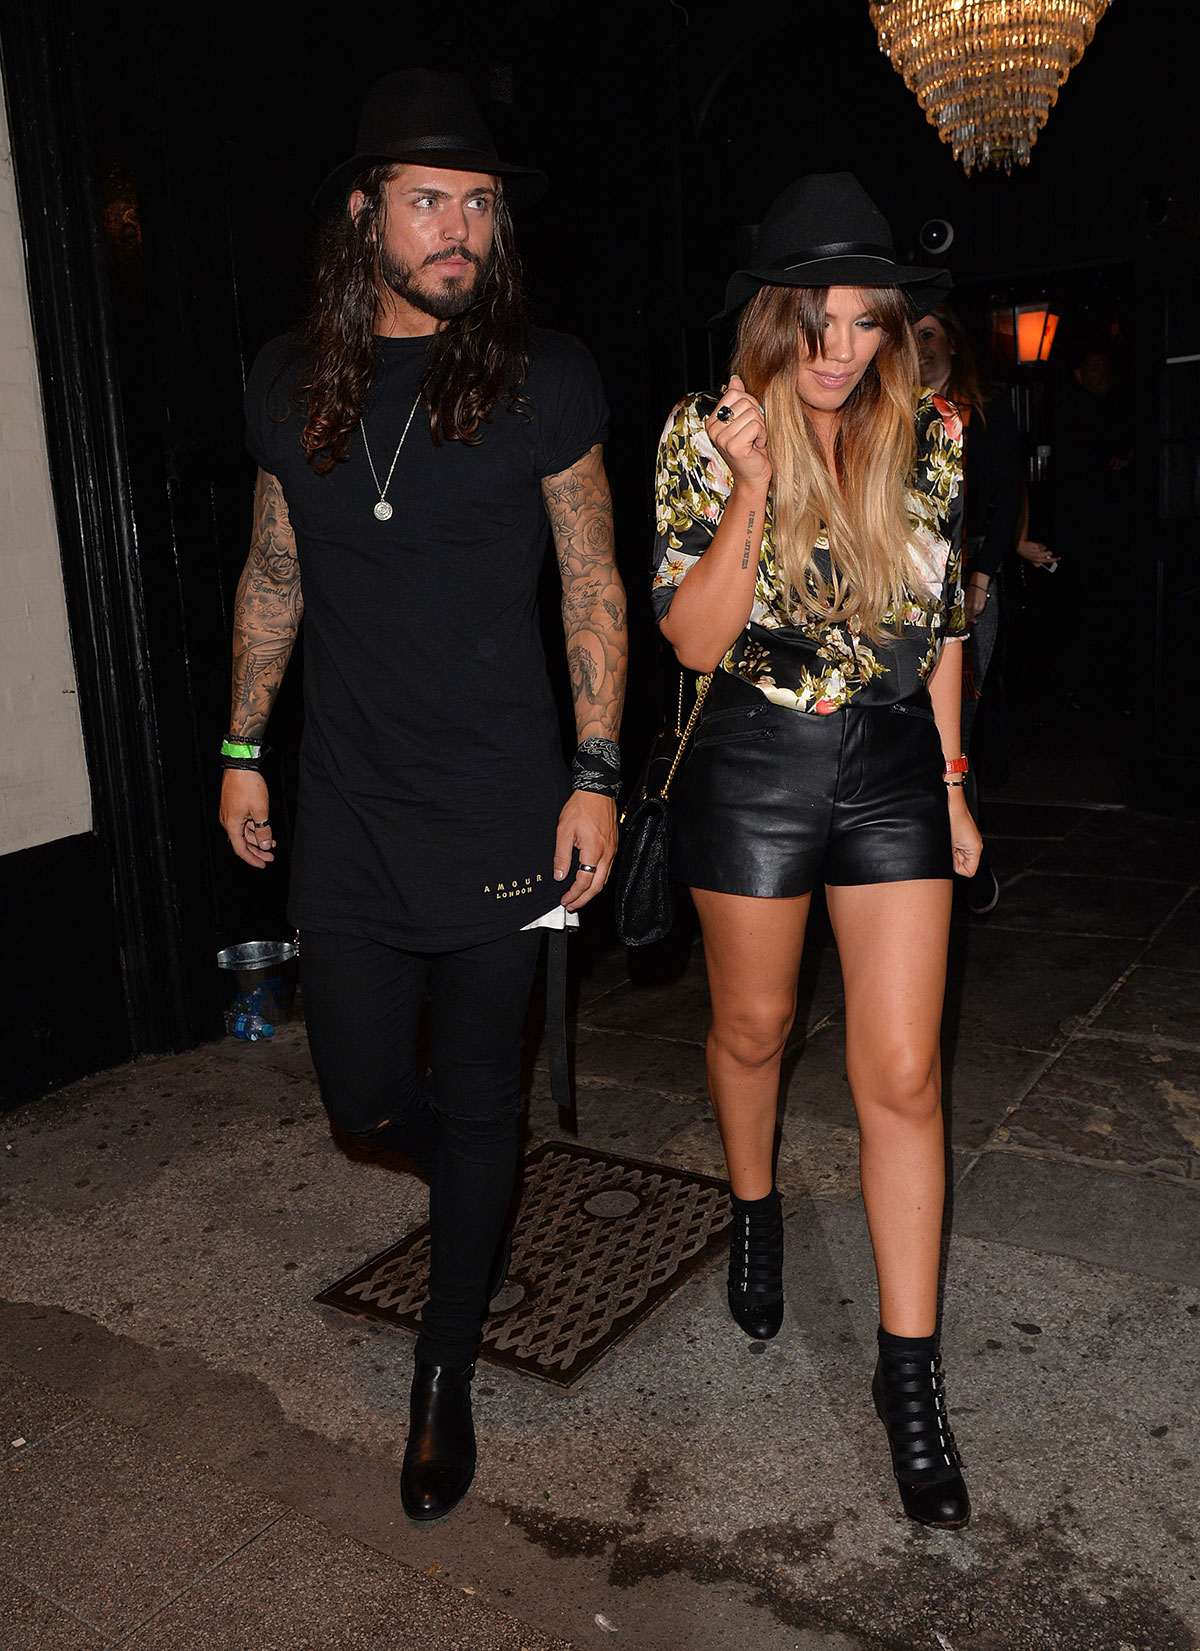 Maria Fowler attends Nicola McLean's birthday party